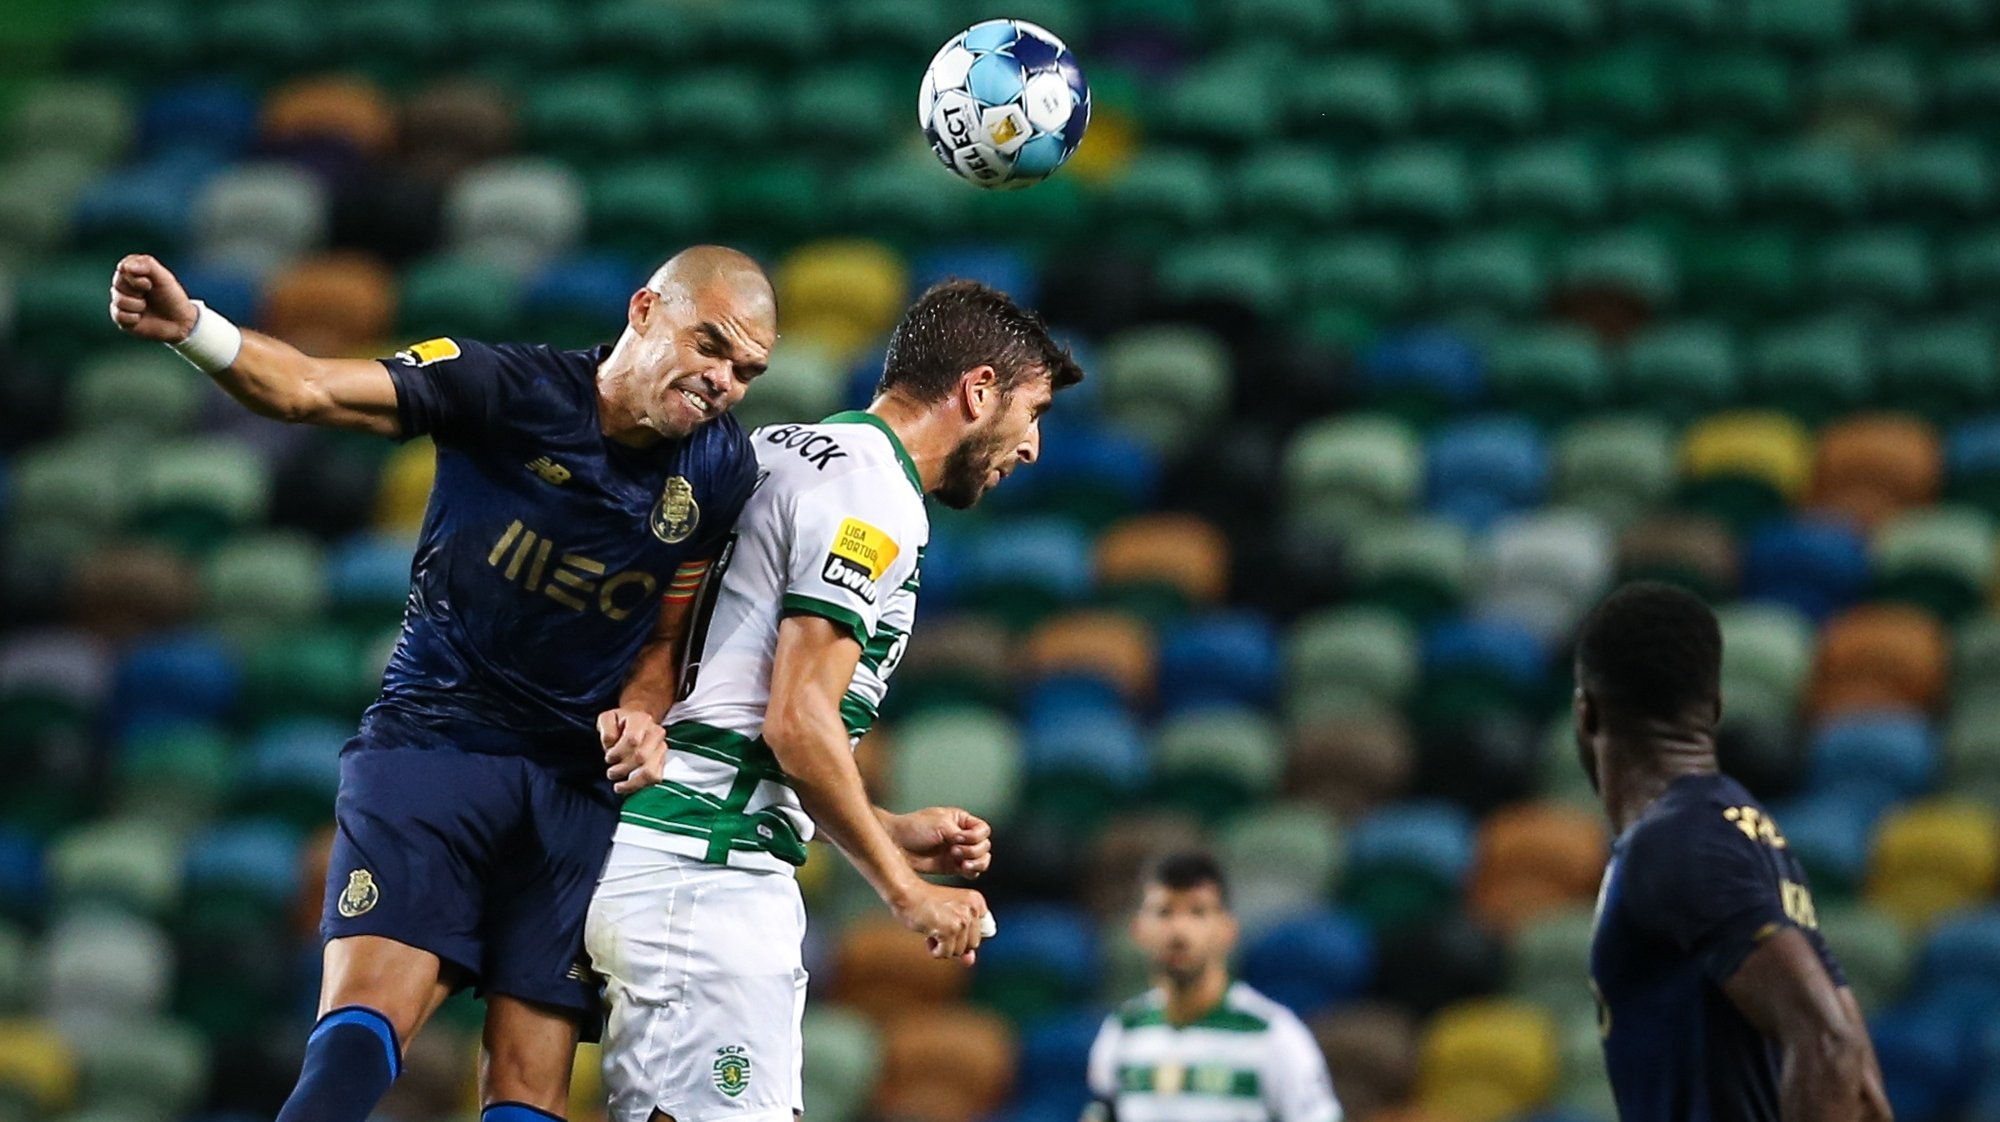 Sporting's Paulinho (R) in action against FC Porto's Pepe (L) during the Portuguese First League soccer match between Sporting and FC Porto at José de Alvalade Stadium in Lisbon, Portugal, 11 September 2021. RODRIGO ANTUNES/LUSA